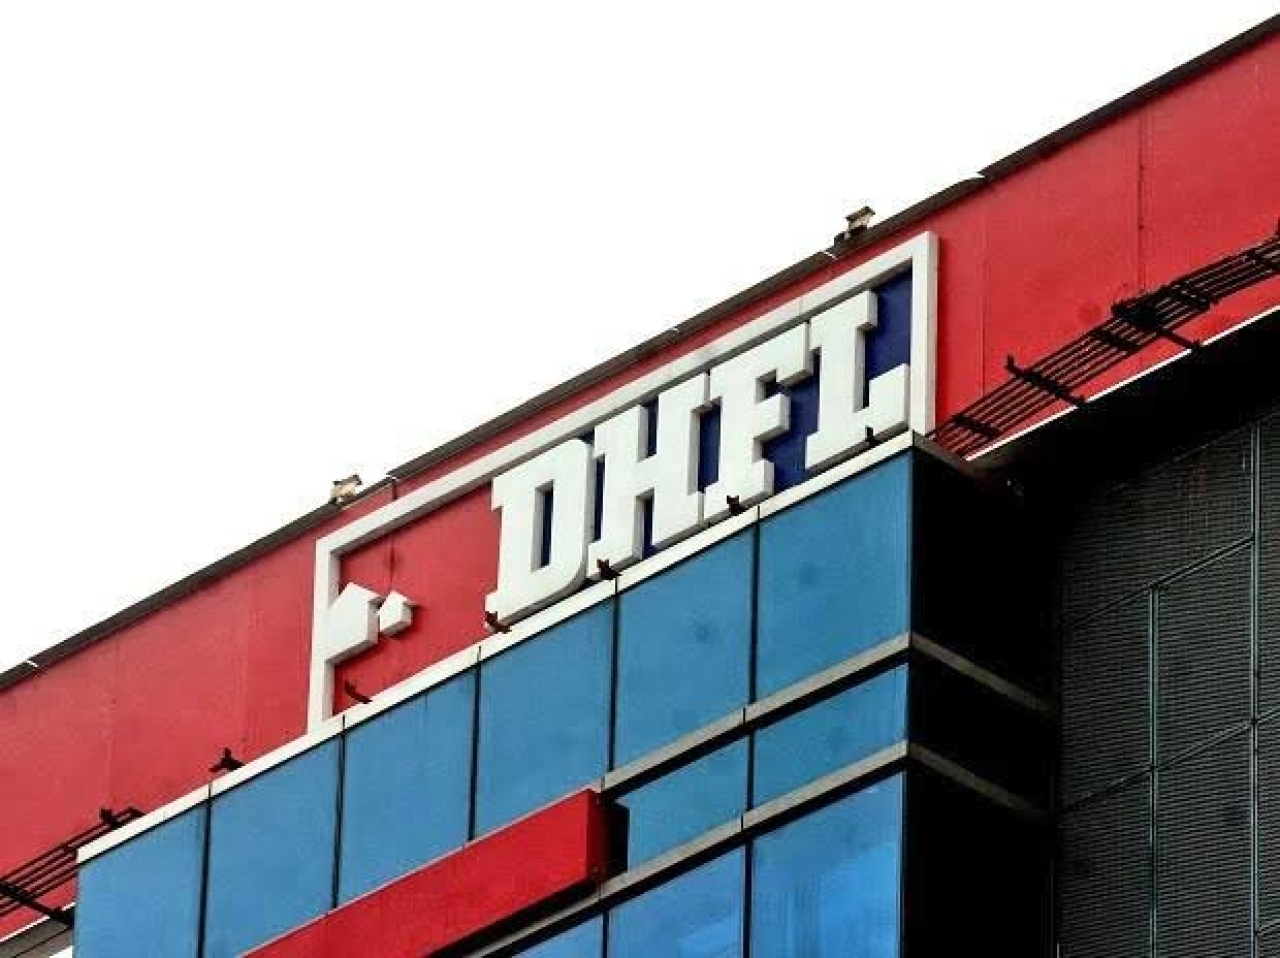 Controversial Firm DHFL's Total Loan Portfolio At Rs 95,615 Crore: Government Tells In Lok Sabha, Orders Probe